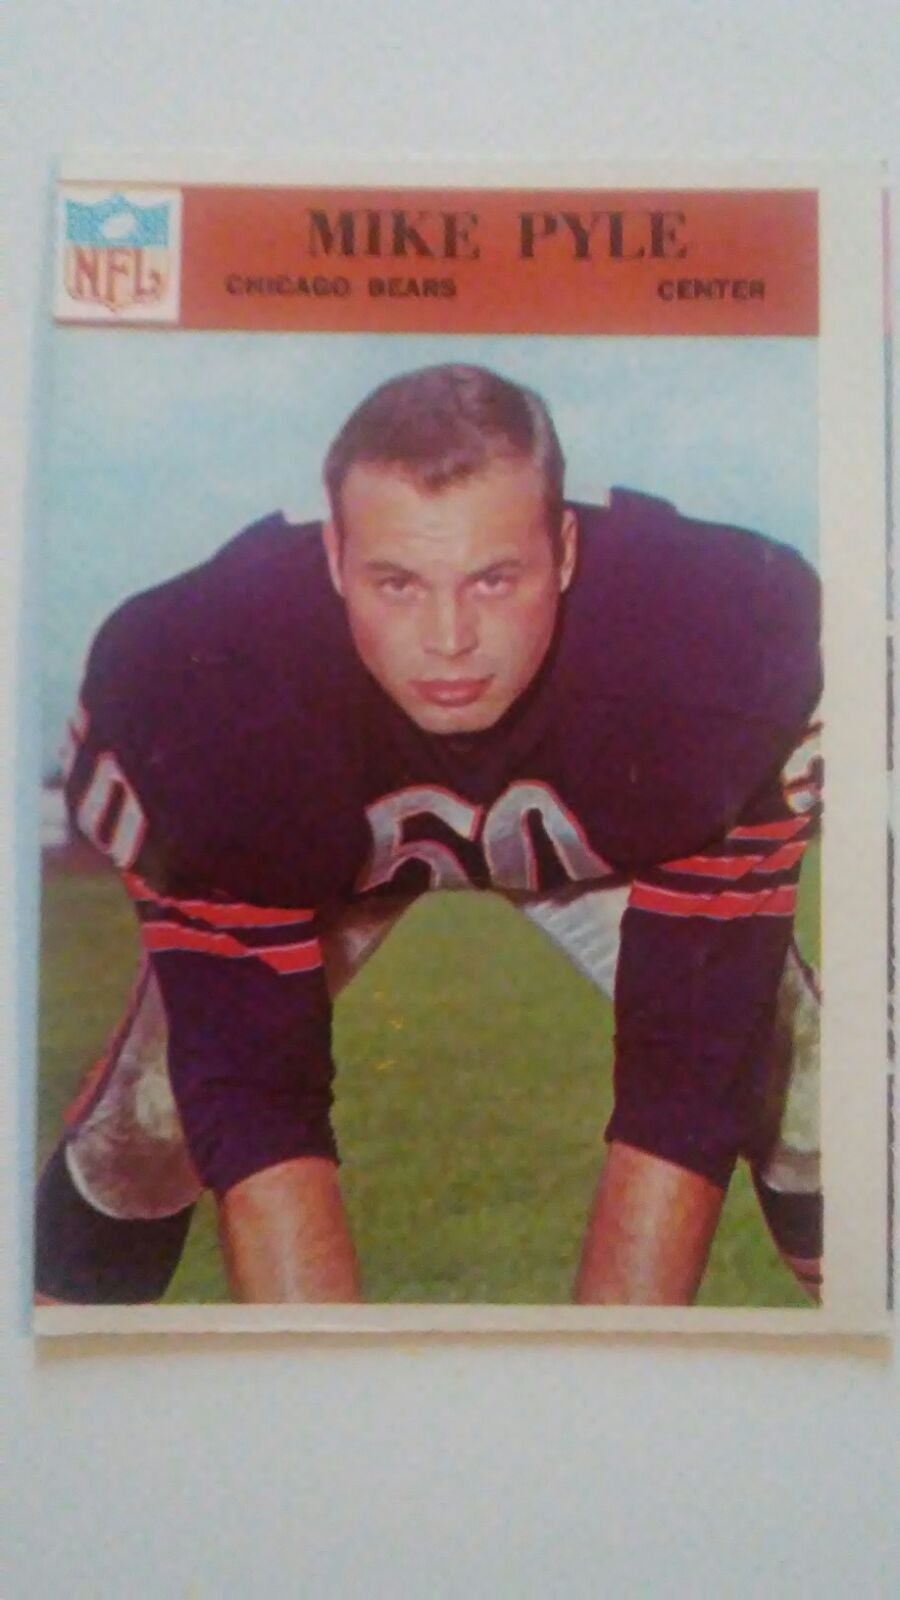 1966 Mike Pyle football card